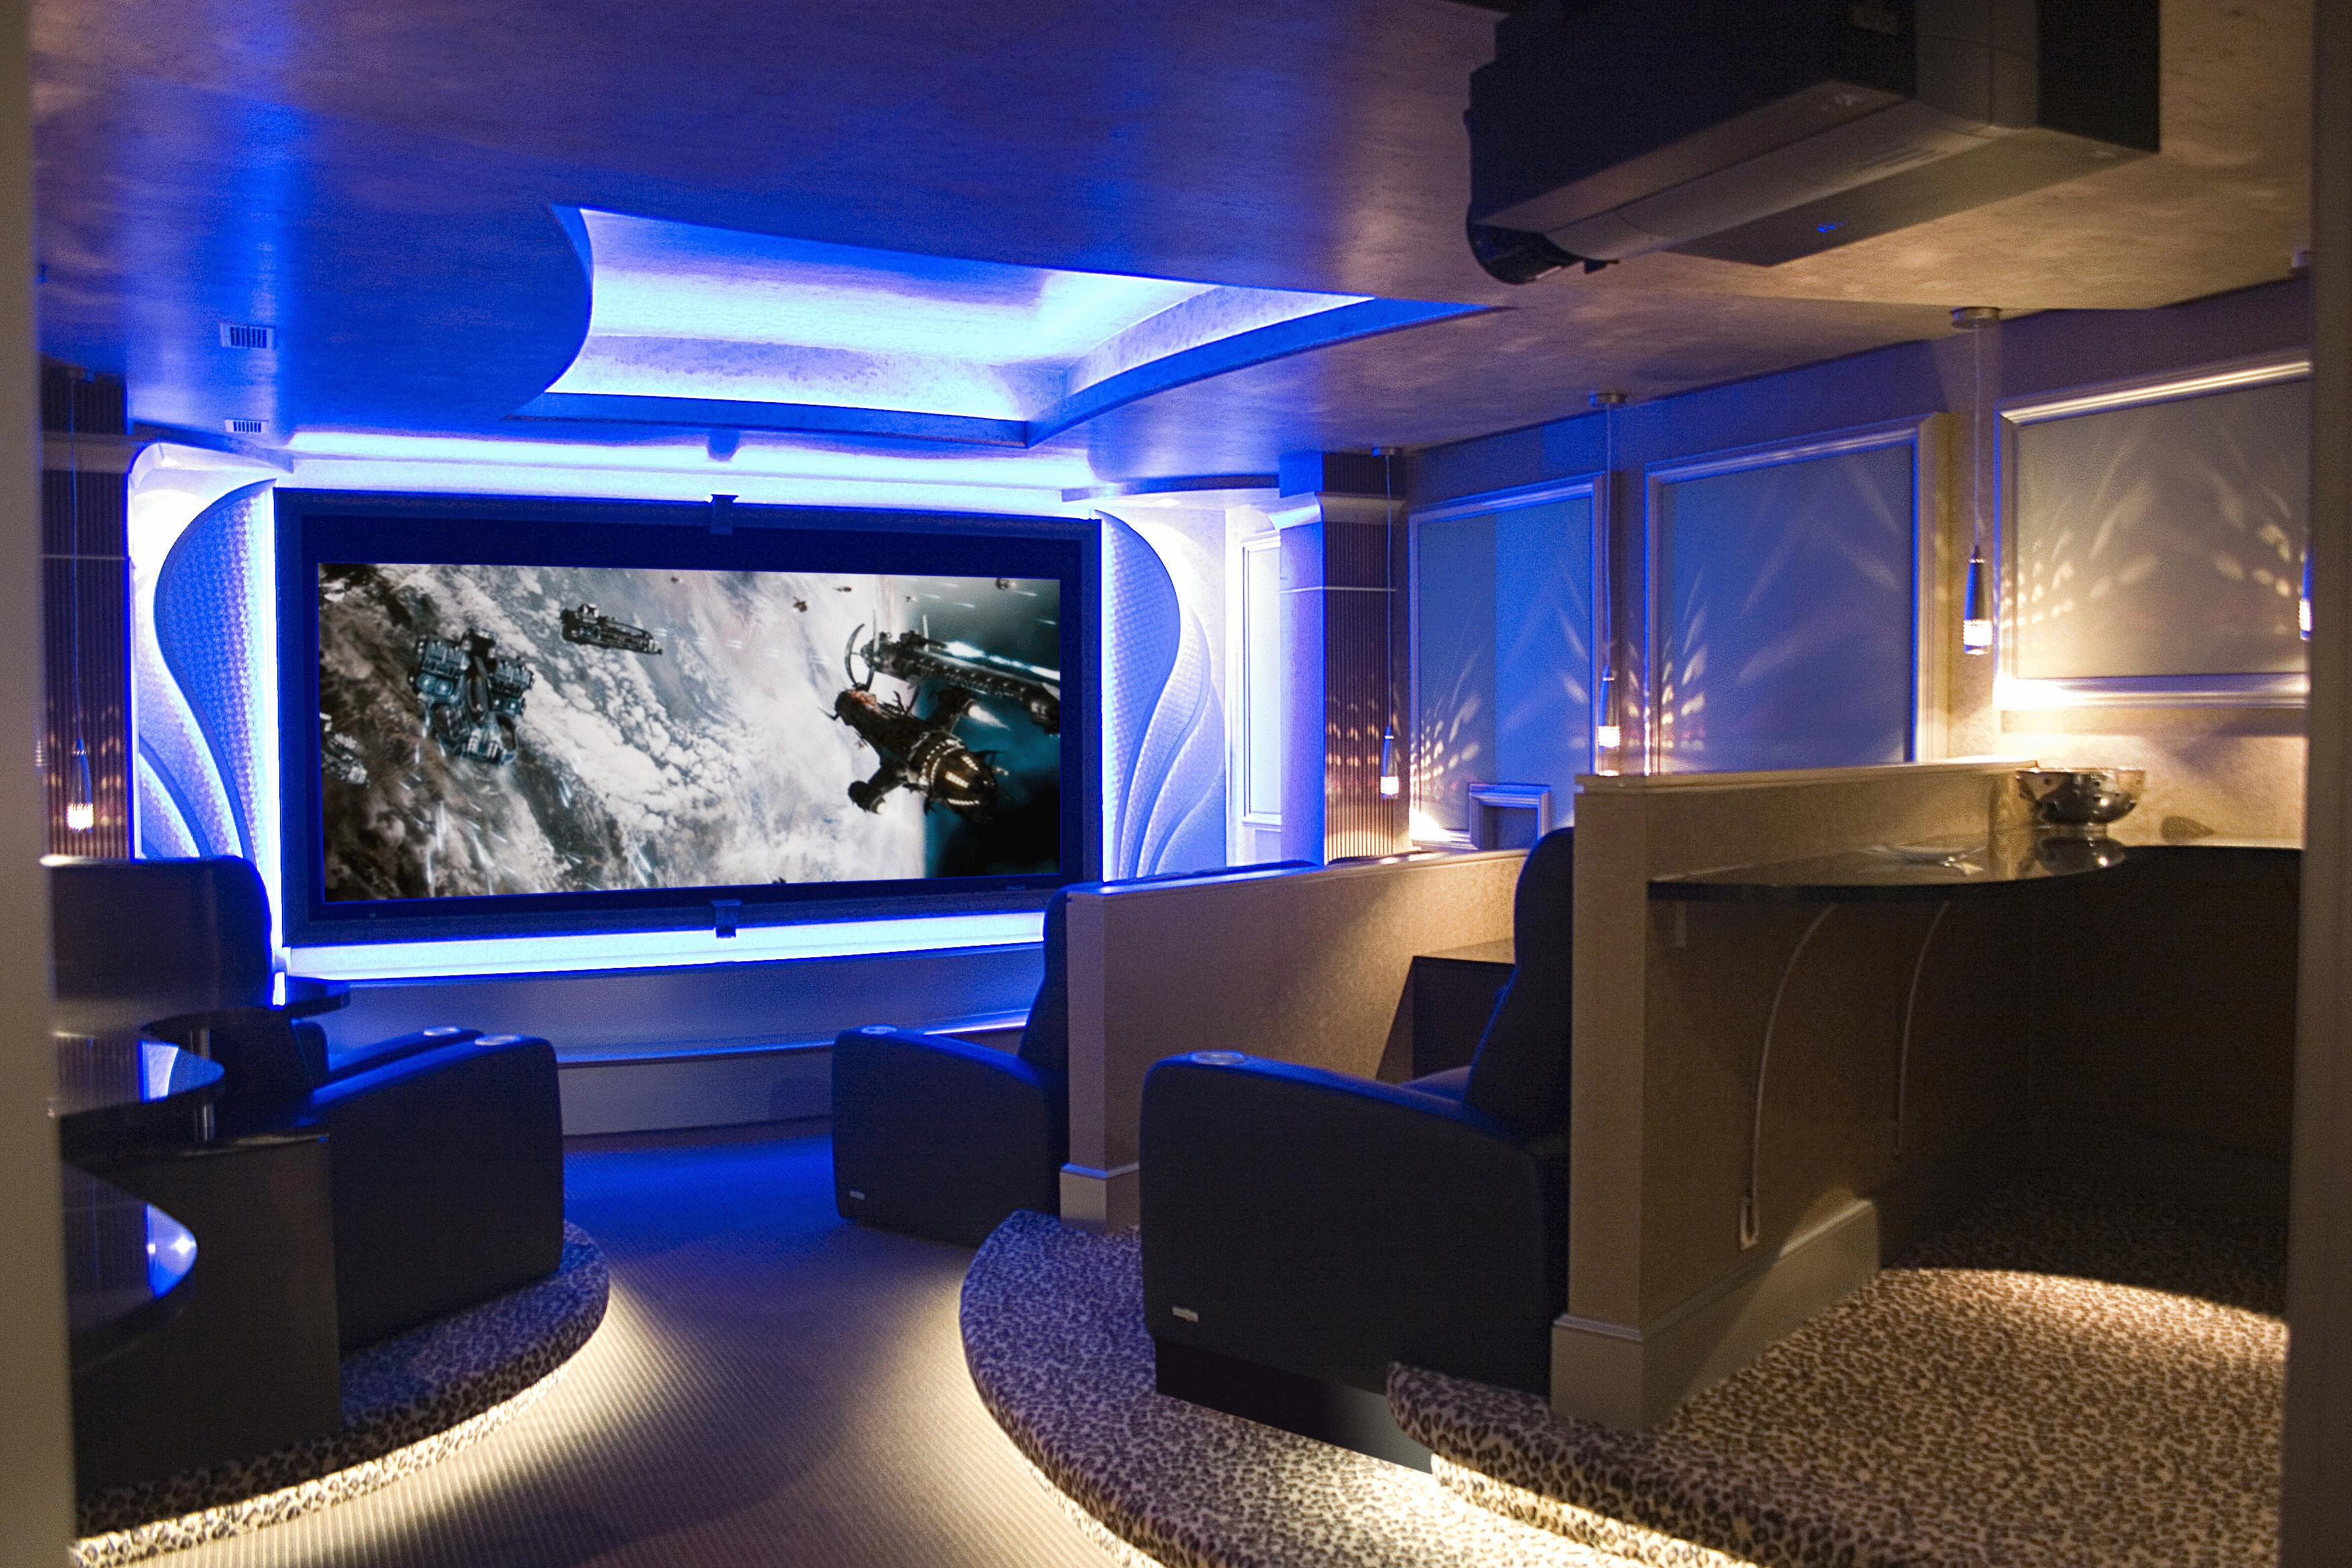 Advancements in home theater audio birmingham whole house audio video systems - Home entertainment design ...